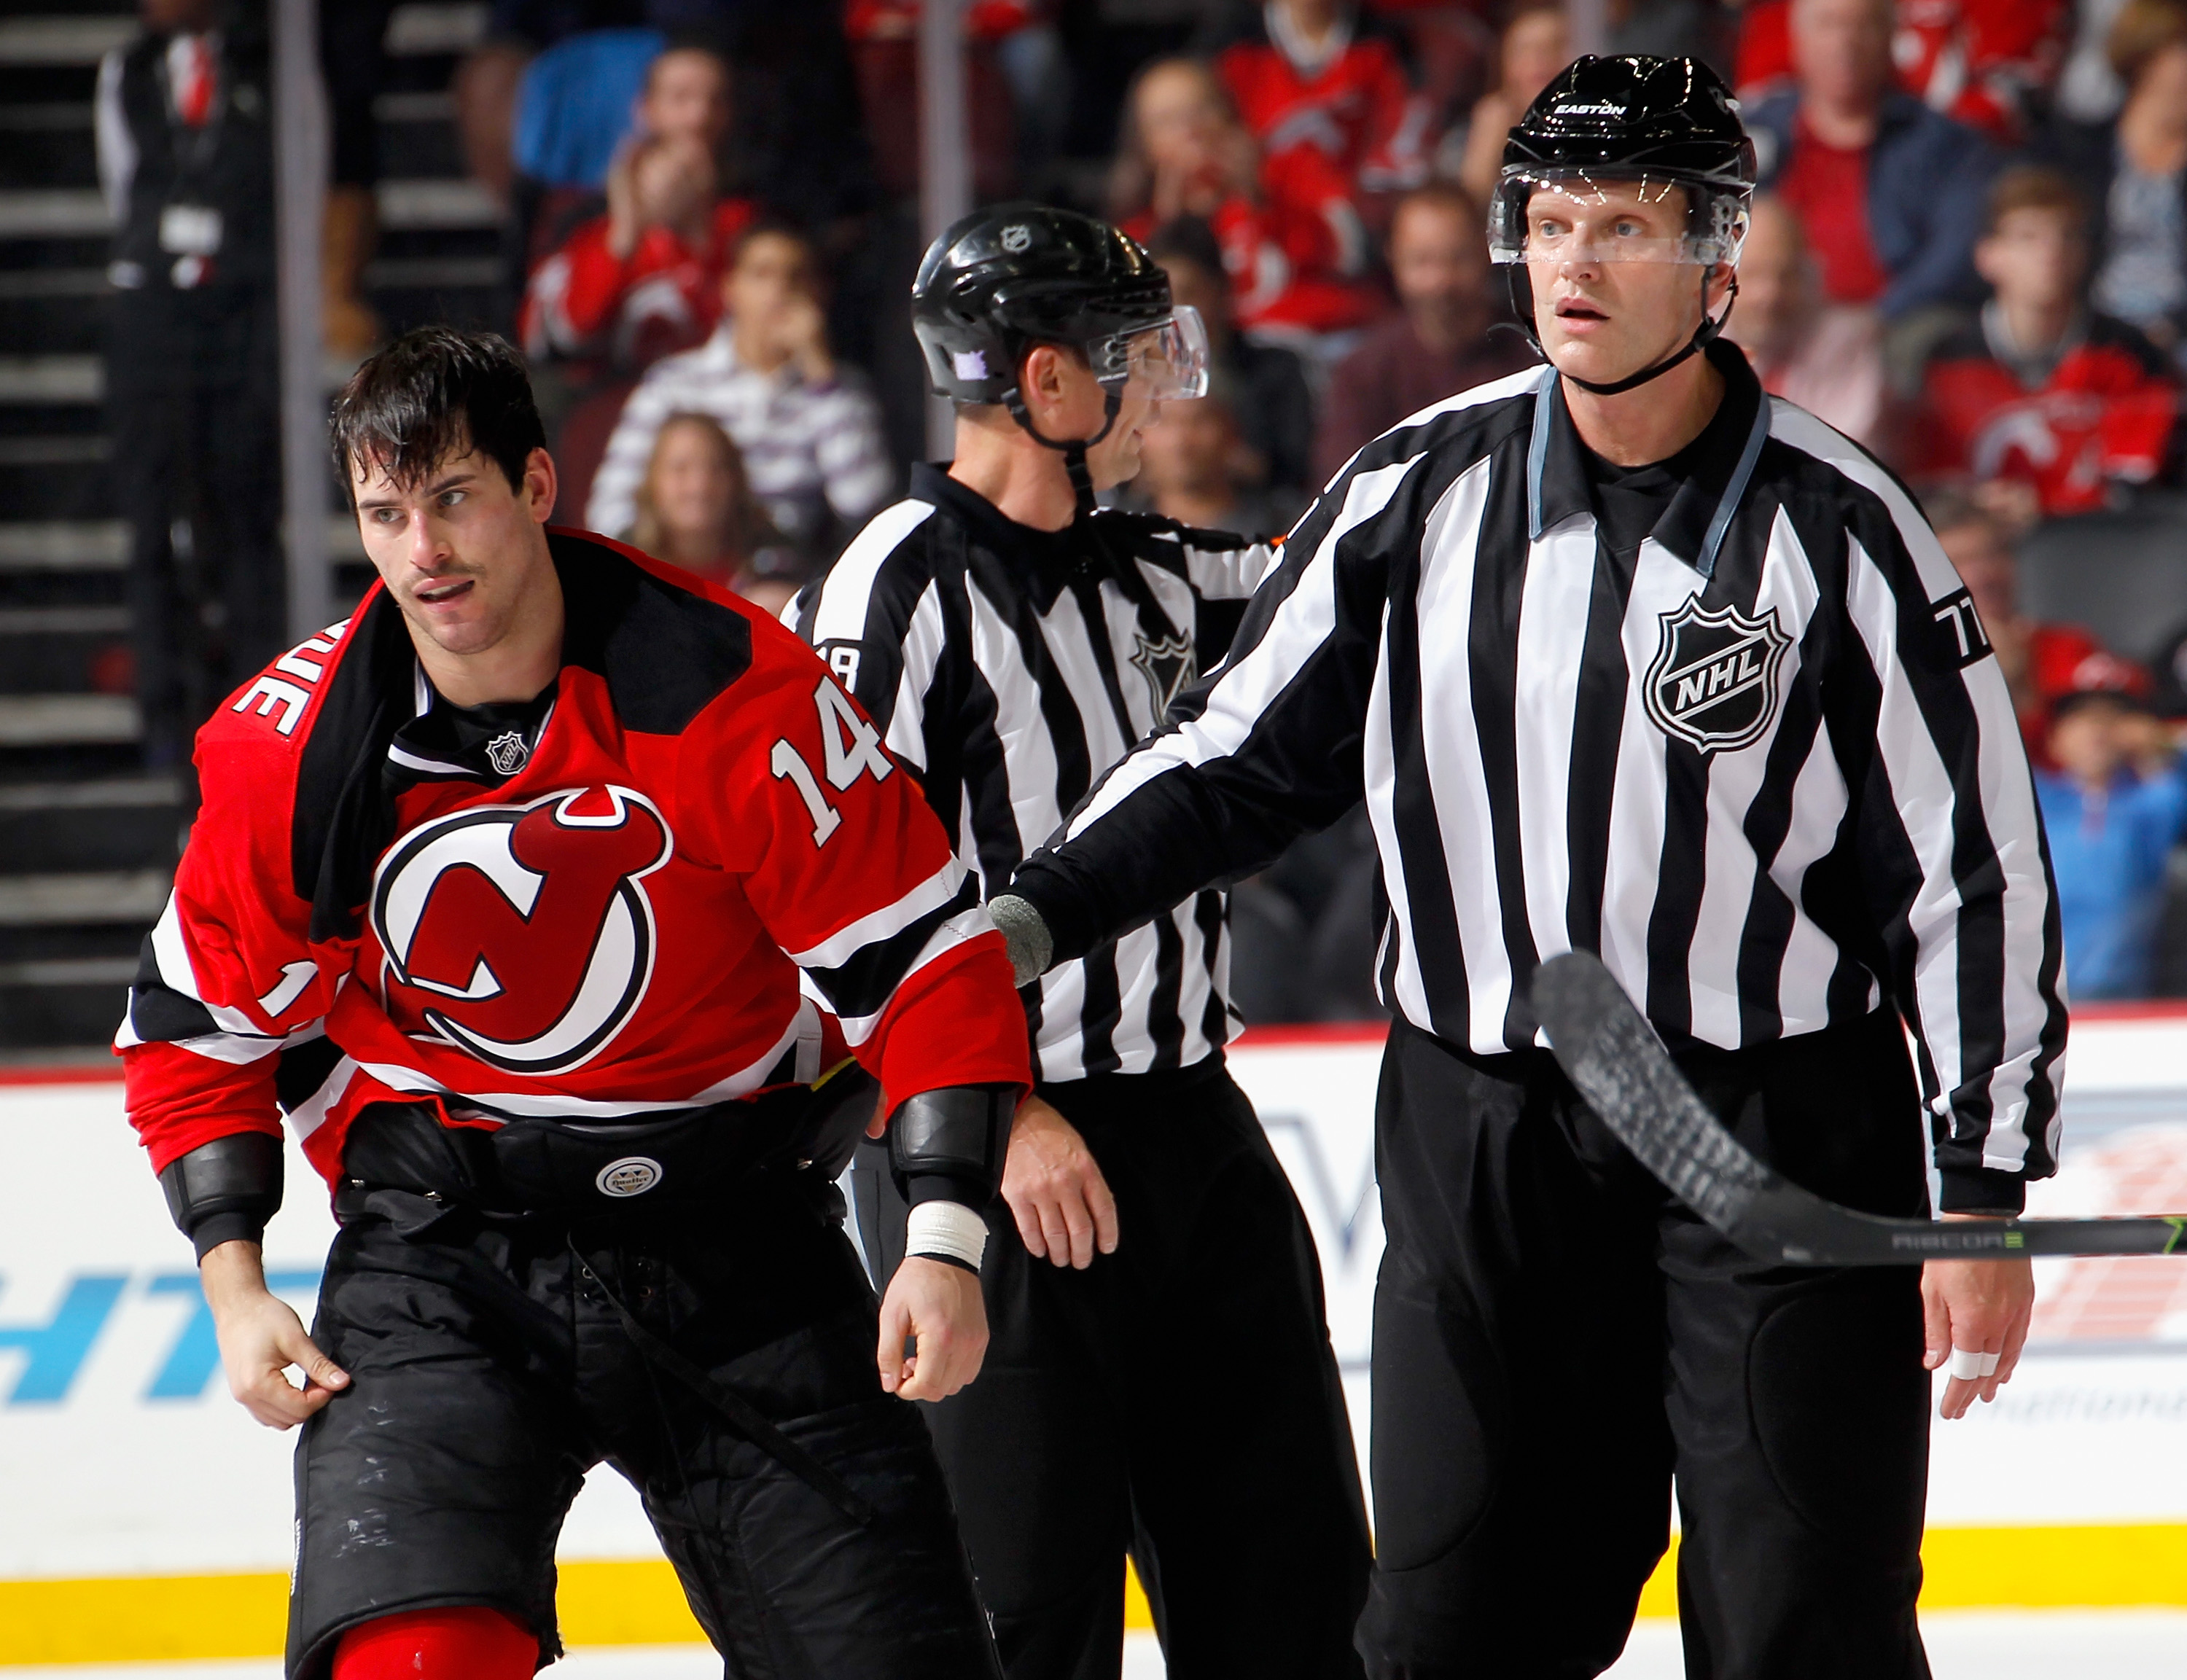 NEWARK, NJ - NOVEMBER 06: Adam Henrique #14 of the New Jersey Devils is escorted off the ice by linesman Tim Nowak #77 after fighting with Jonathan Toews of the Chicago Blackhawks during an NHL hockey game at Prudential Center on November 6, 2015 in Newark, New Jersey. (Photo by Paul Bereswill/Getty Images)